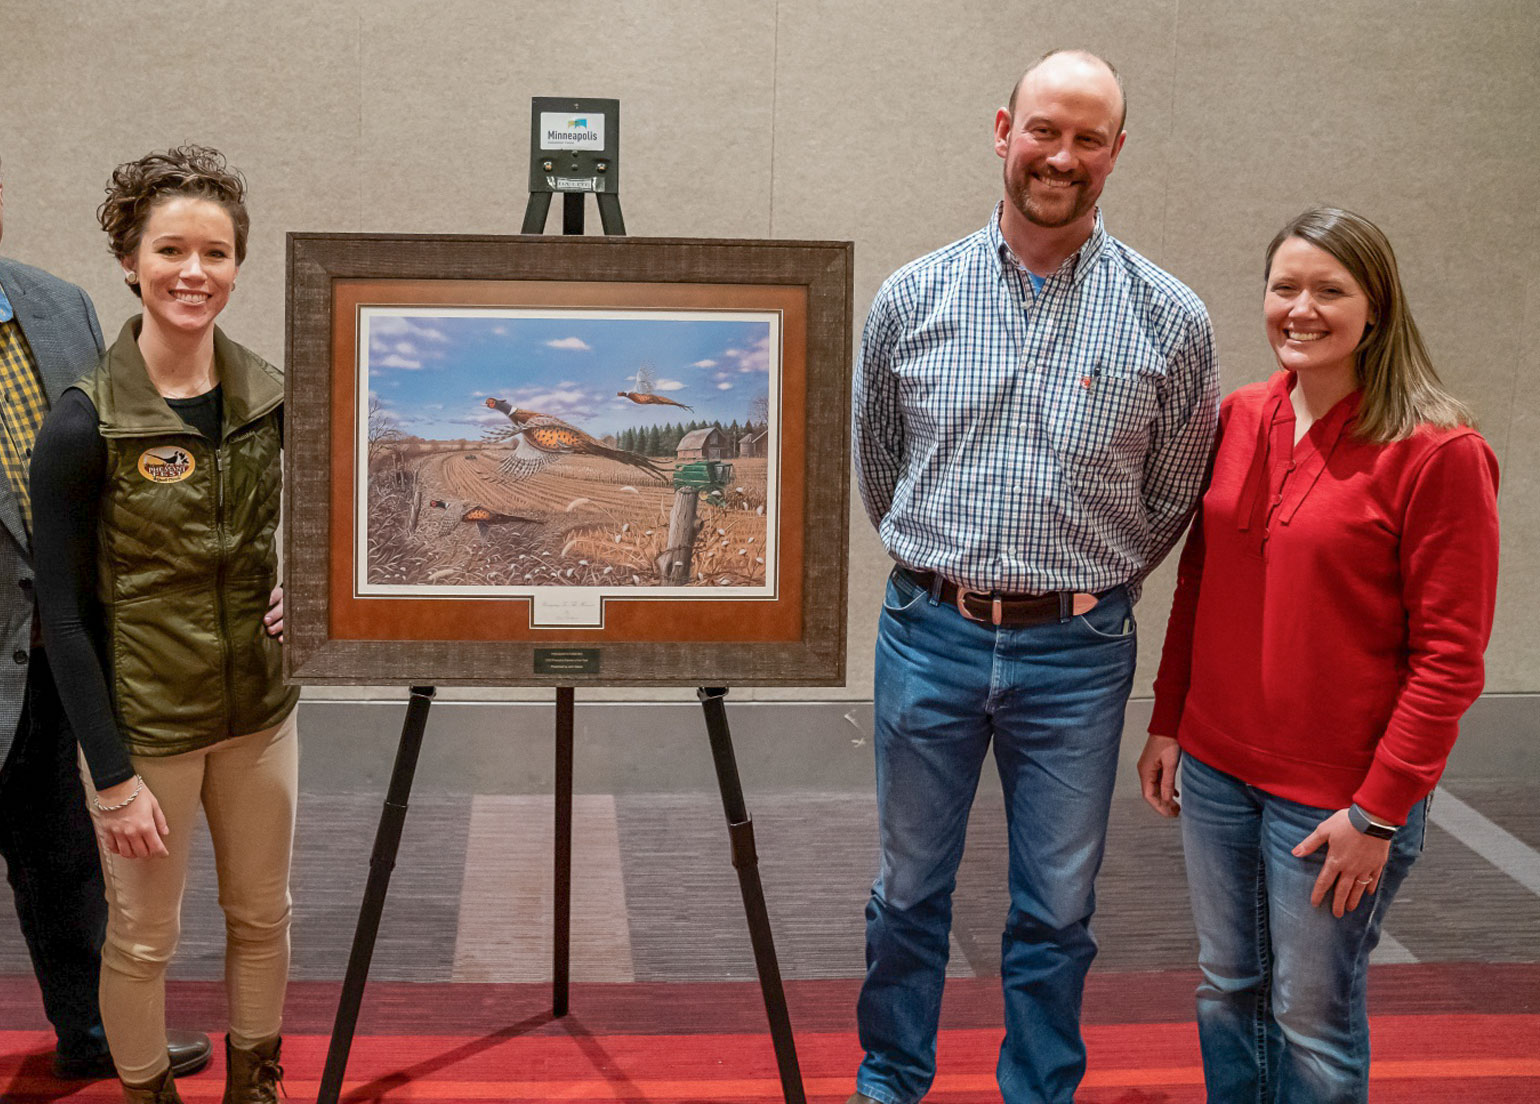 Melissa Shockman, Pheasants Forever precision agriculture and conservation specialist, Christof Just and his wife, Kelli pose after presentation of Farmer of the Year award